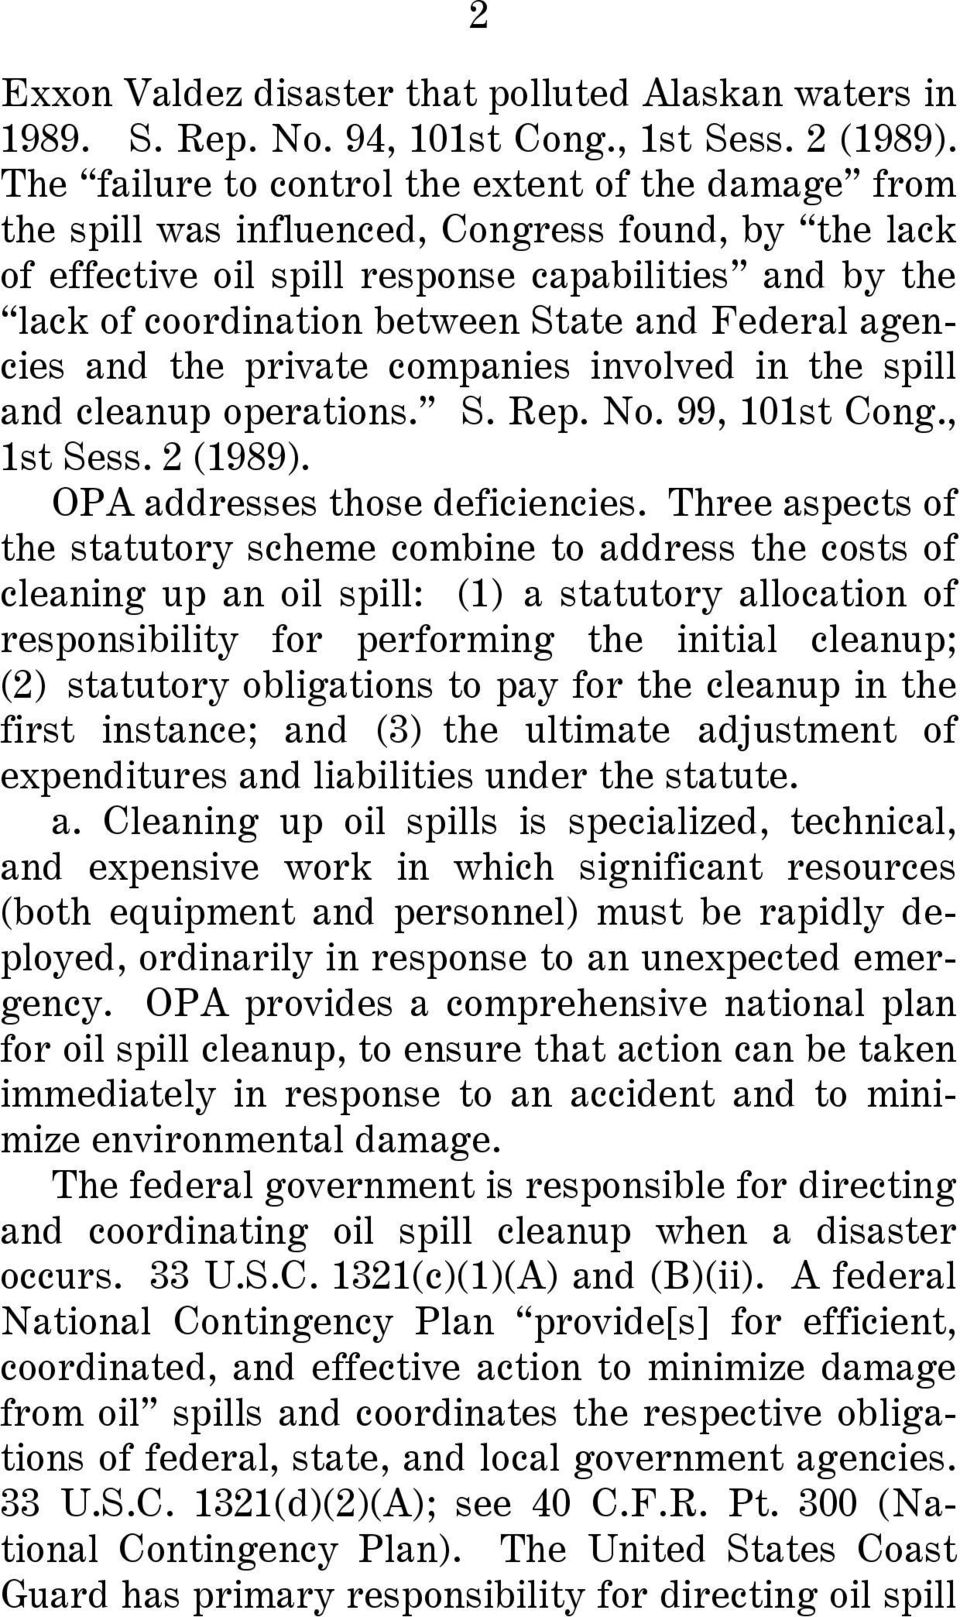 and Federal agencies and the private companies involved in the spill and cleanup operations. S. Rep. No. 99, 101st Cong., 1st Sess. 2 (1989). OPA addresses those deficiencies.